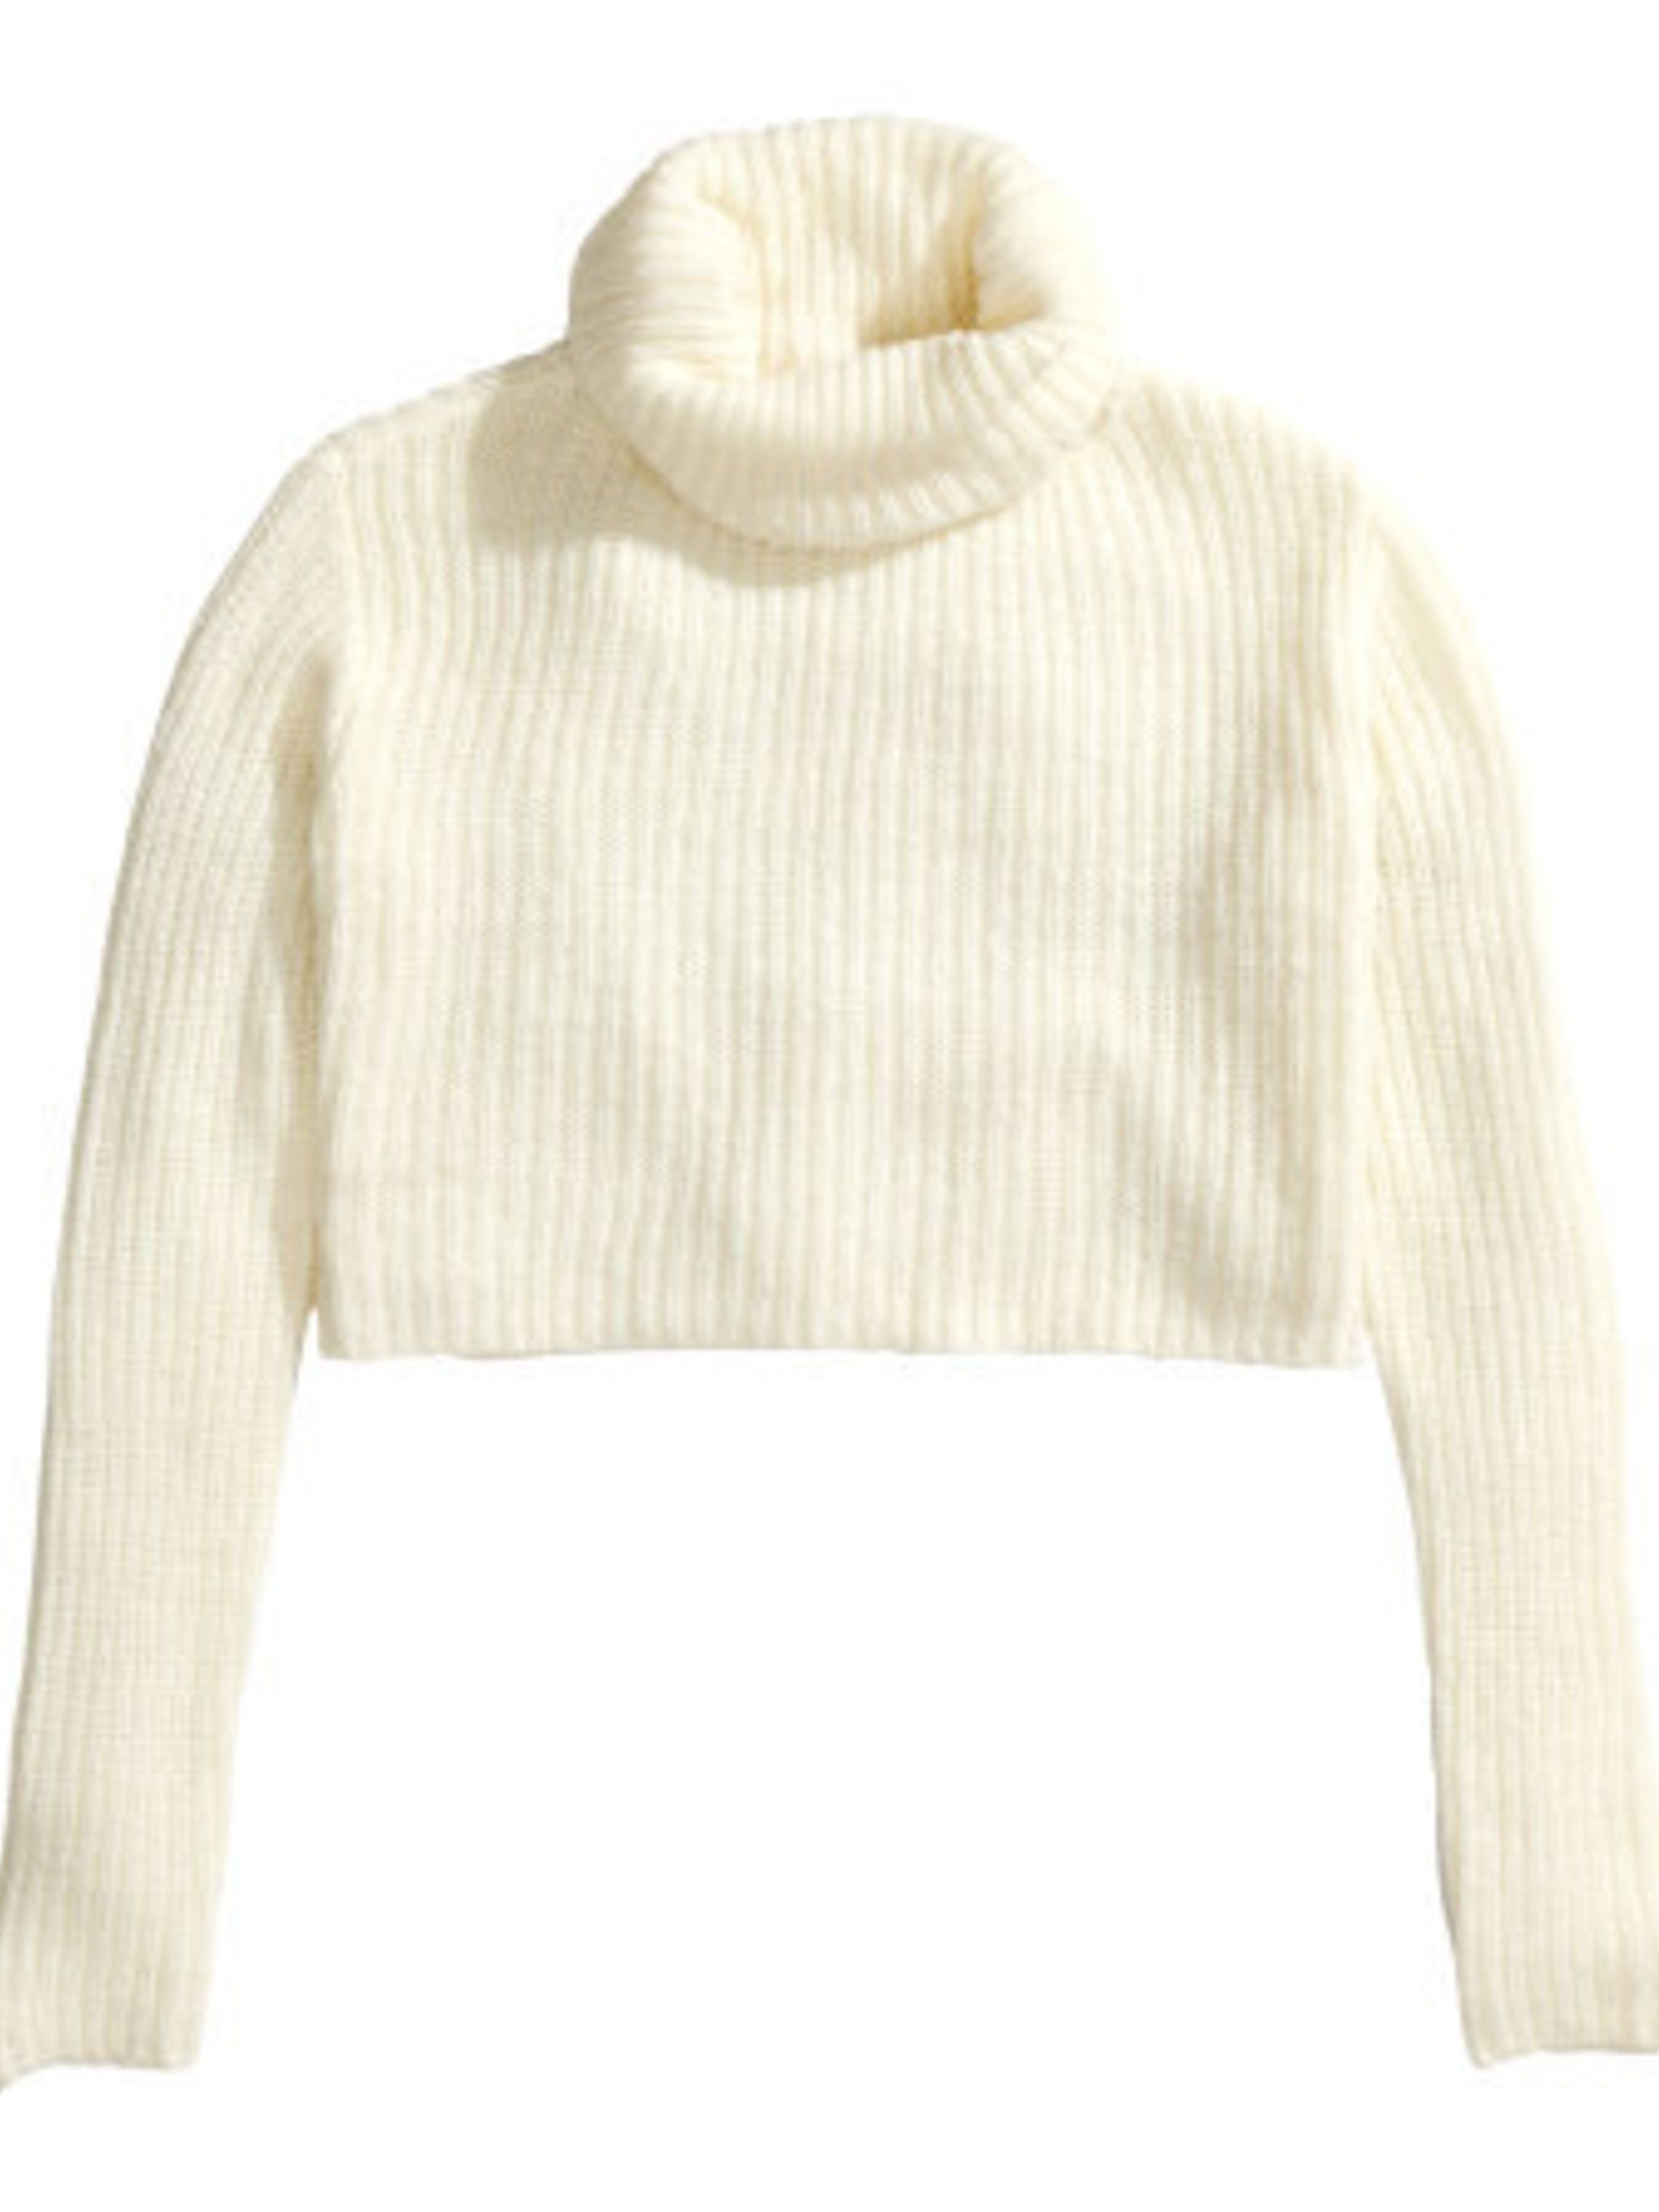 """<p>Polo-neck jumper from <a href=""""http://www.hm.com/gb/product/44753?article=44753-A&fromSearch=polo&cm_vc=SEARCH"""">H&M,</a> £14.99.</p>"""